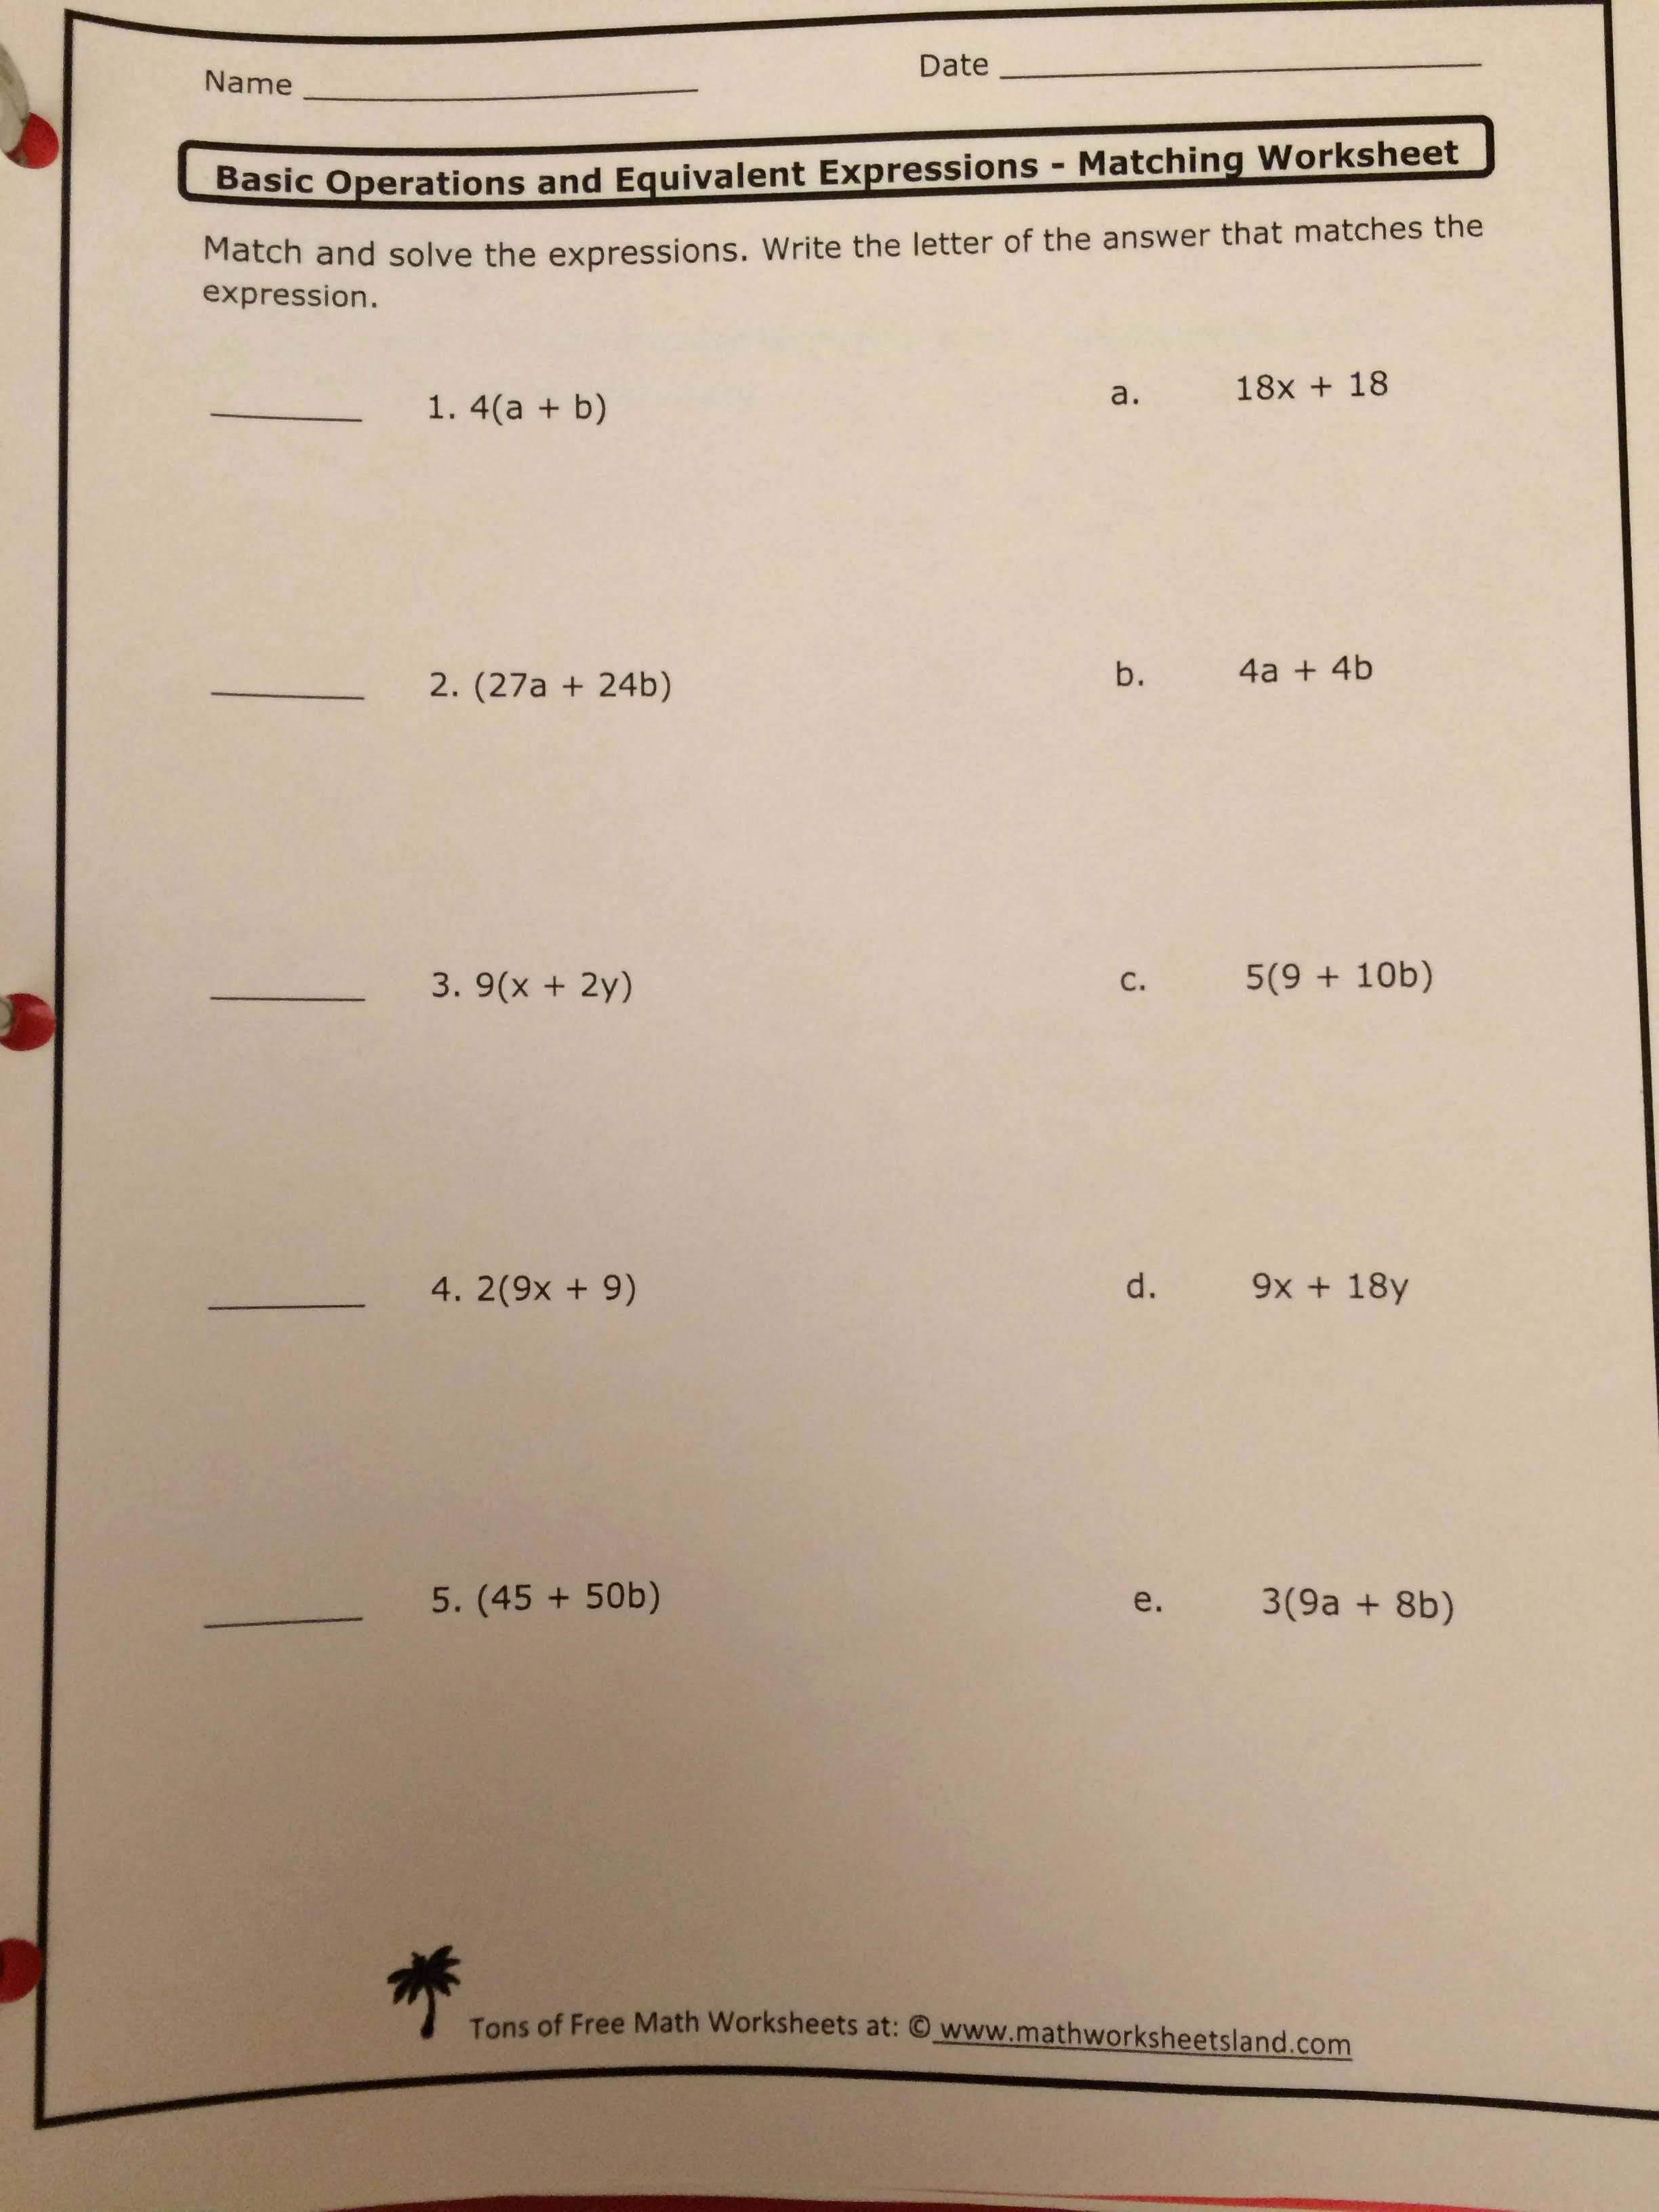 Equivalent Expressions Worksheet 6th Grade Unique Homework assignments and Notes Ms Al Raishouni S 6th